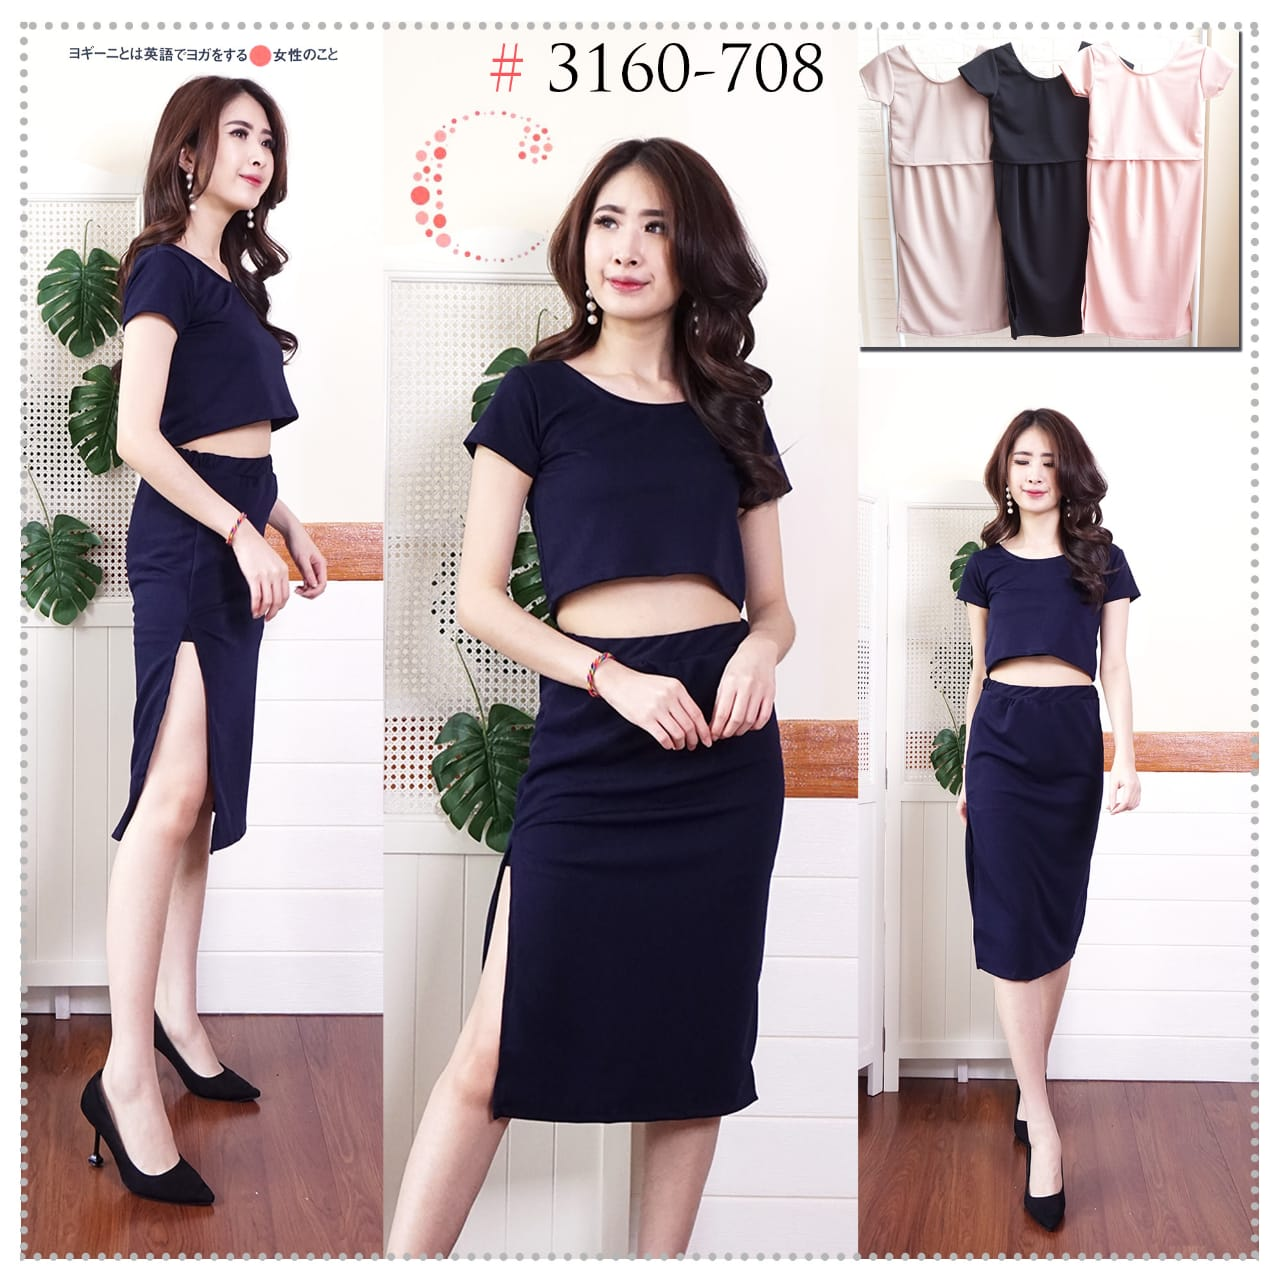 1 set skirt + tops 3160-708